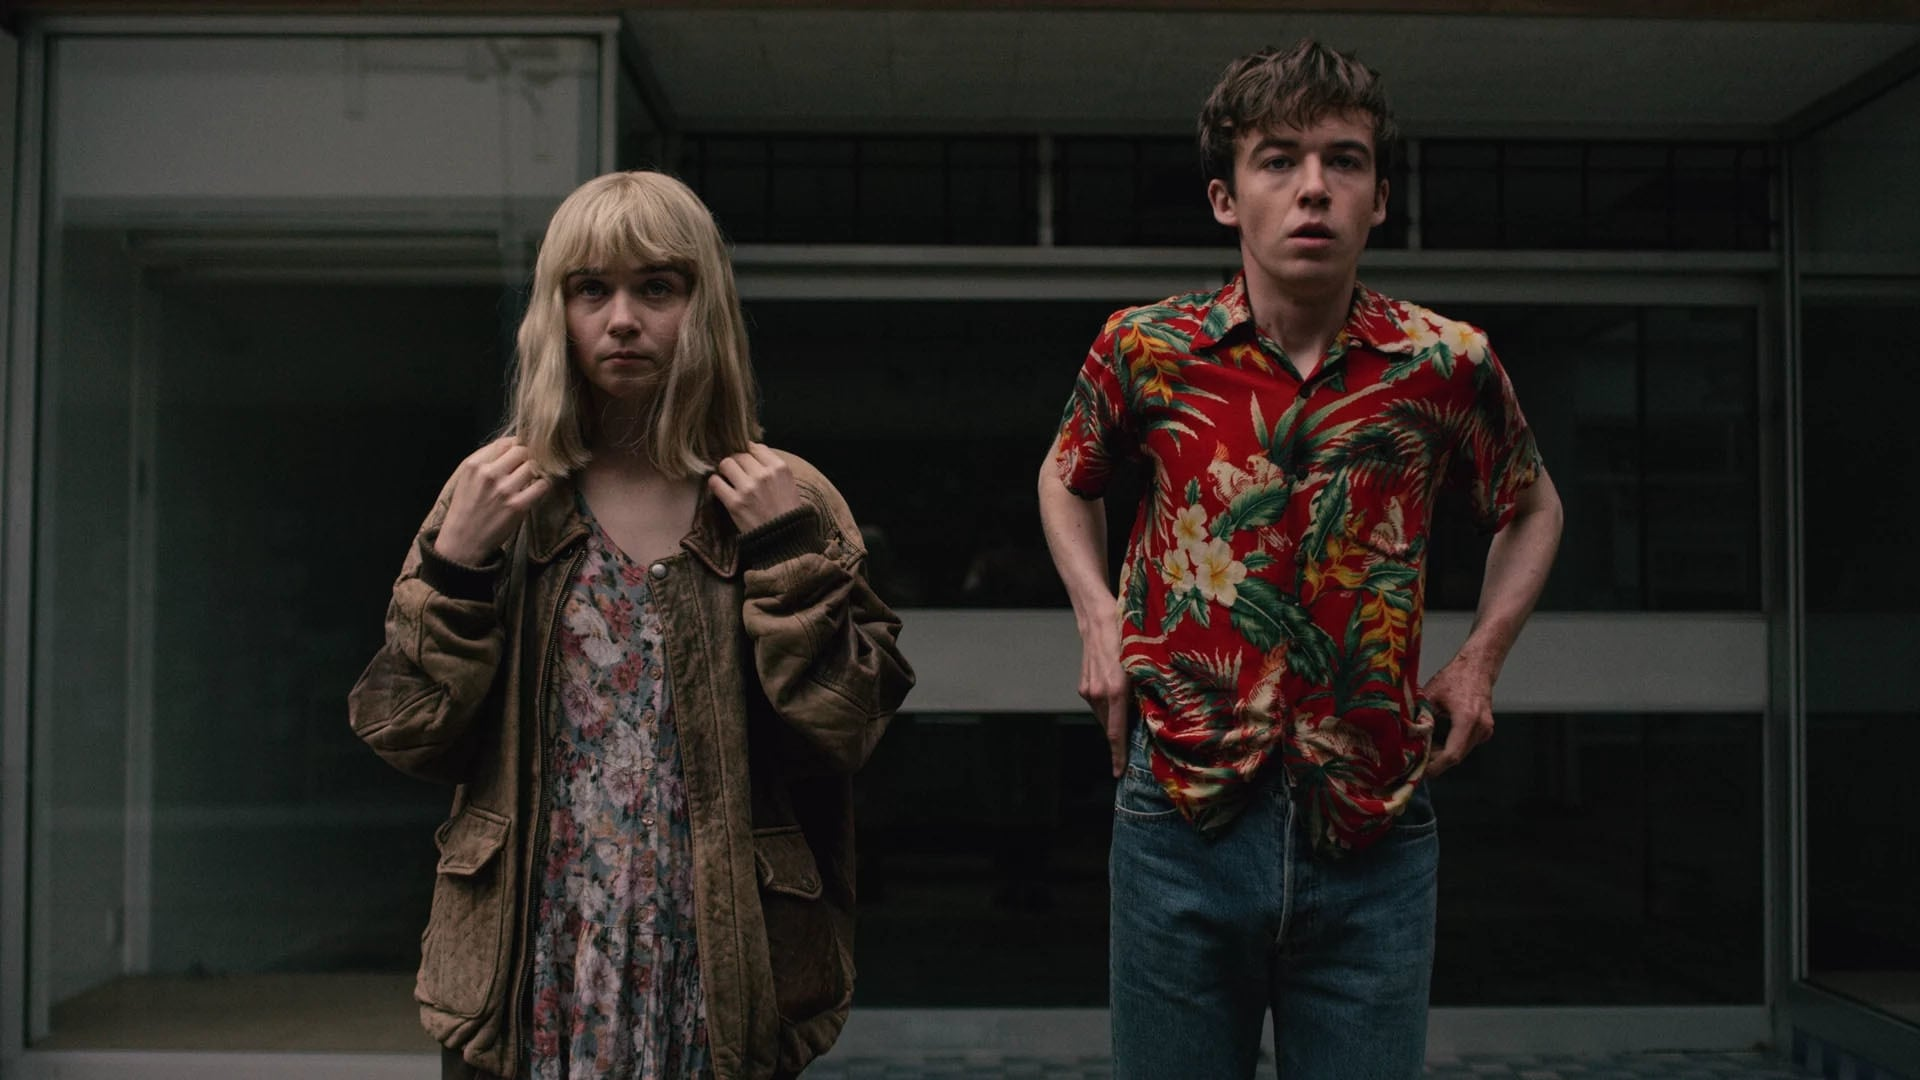 The End of the F***ing World - Season 1 Episode 4 : Episode 4